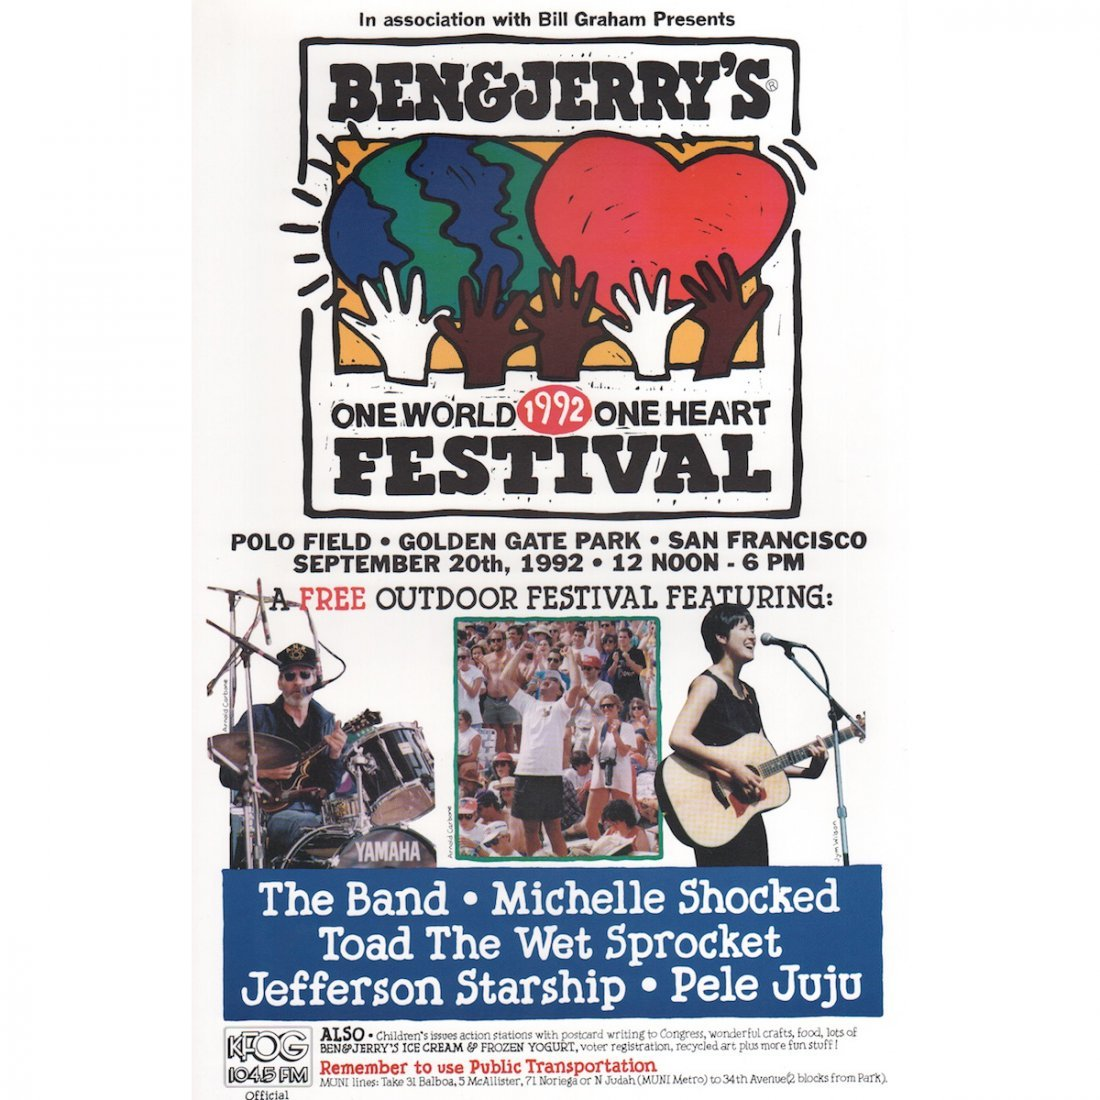 The Band - 1992 Concert Poster